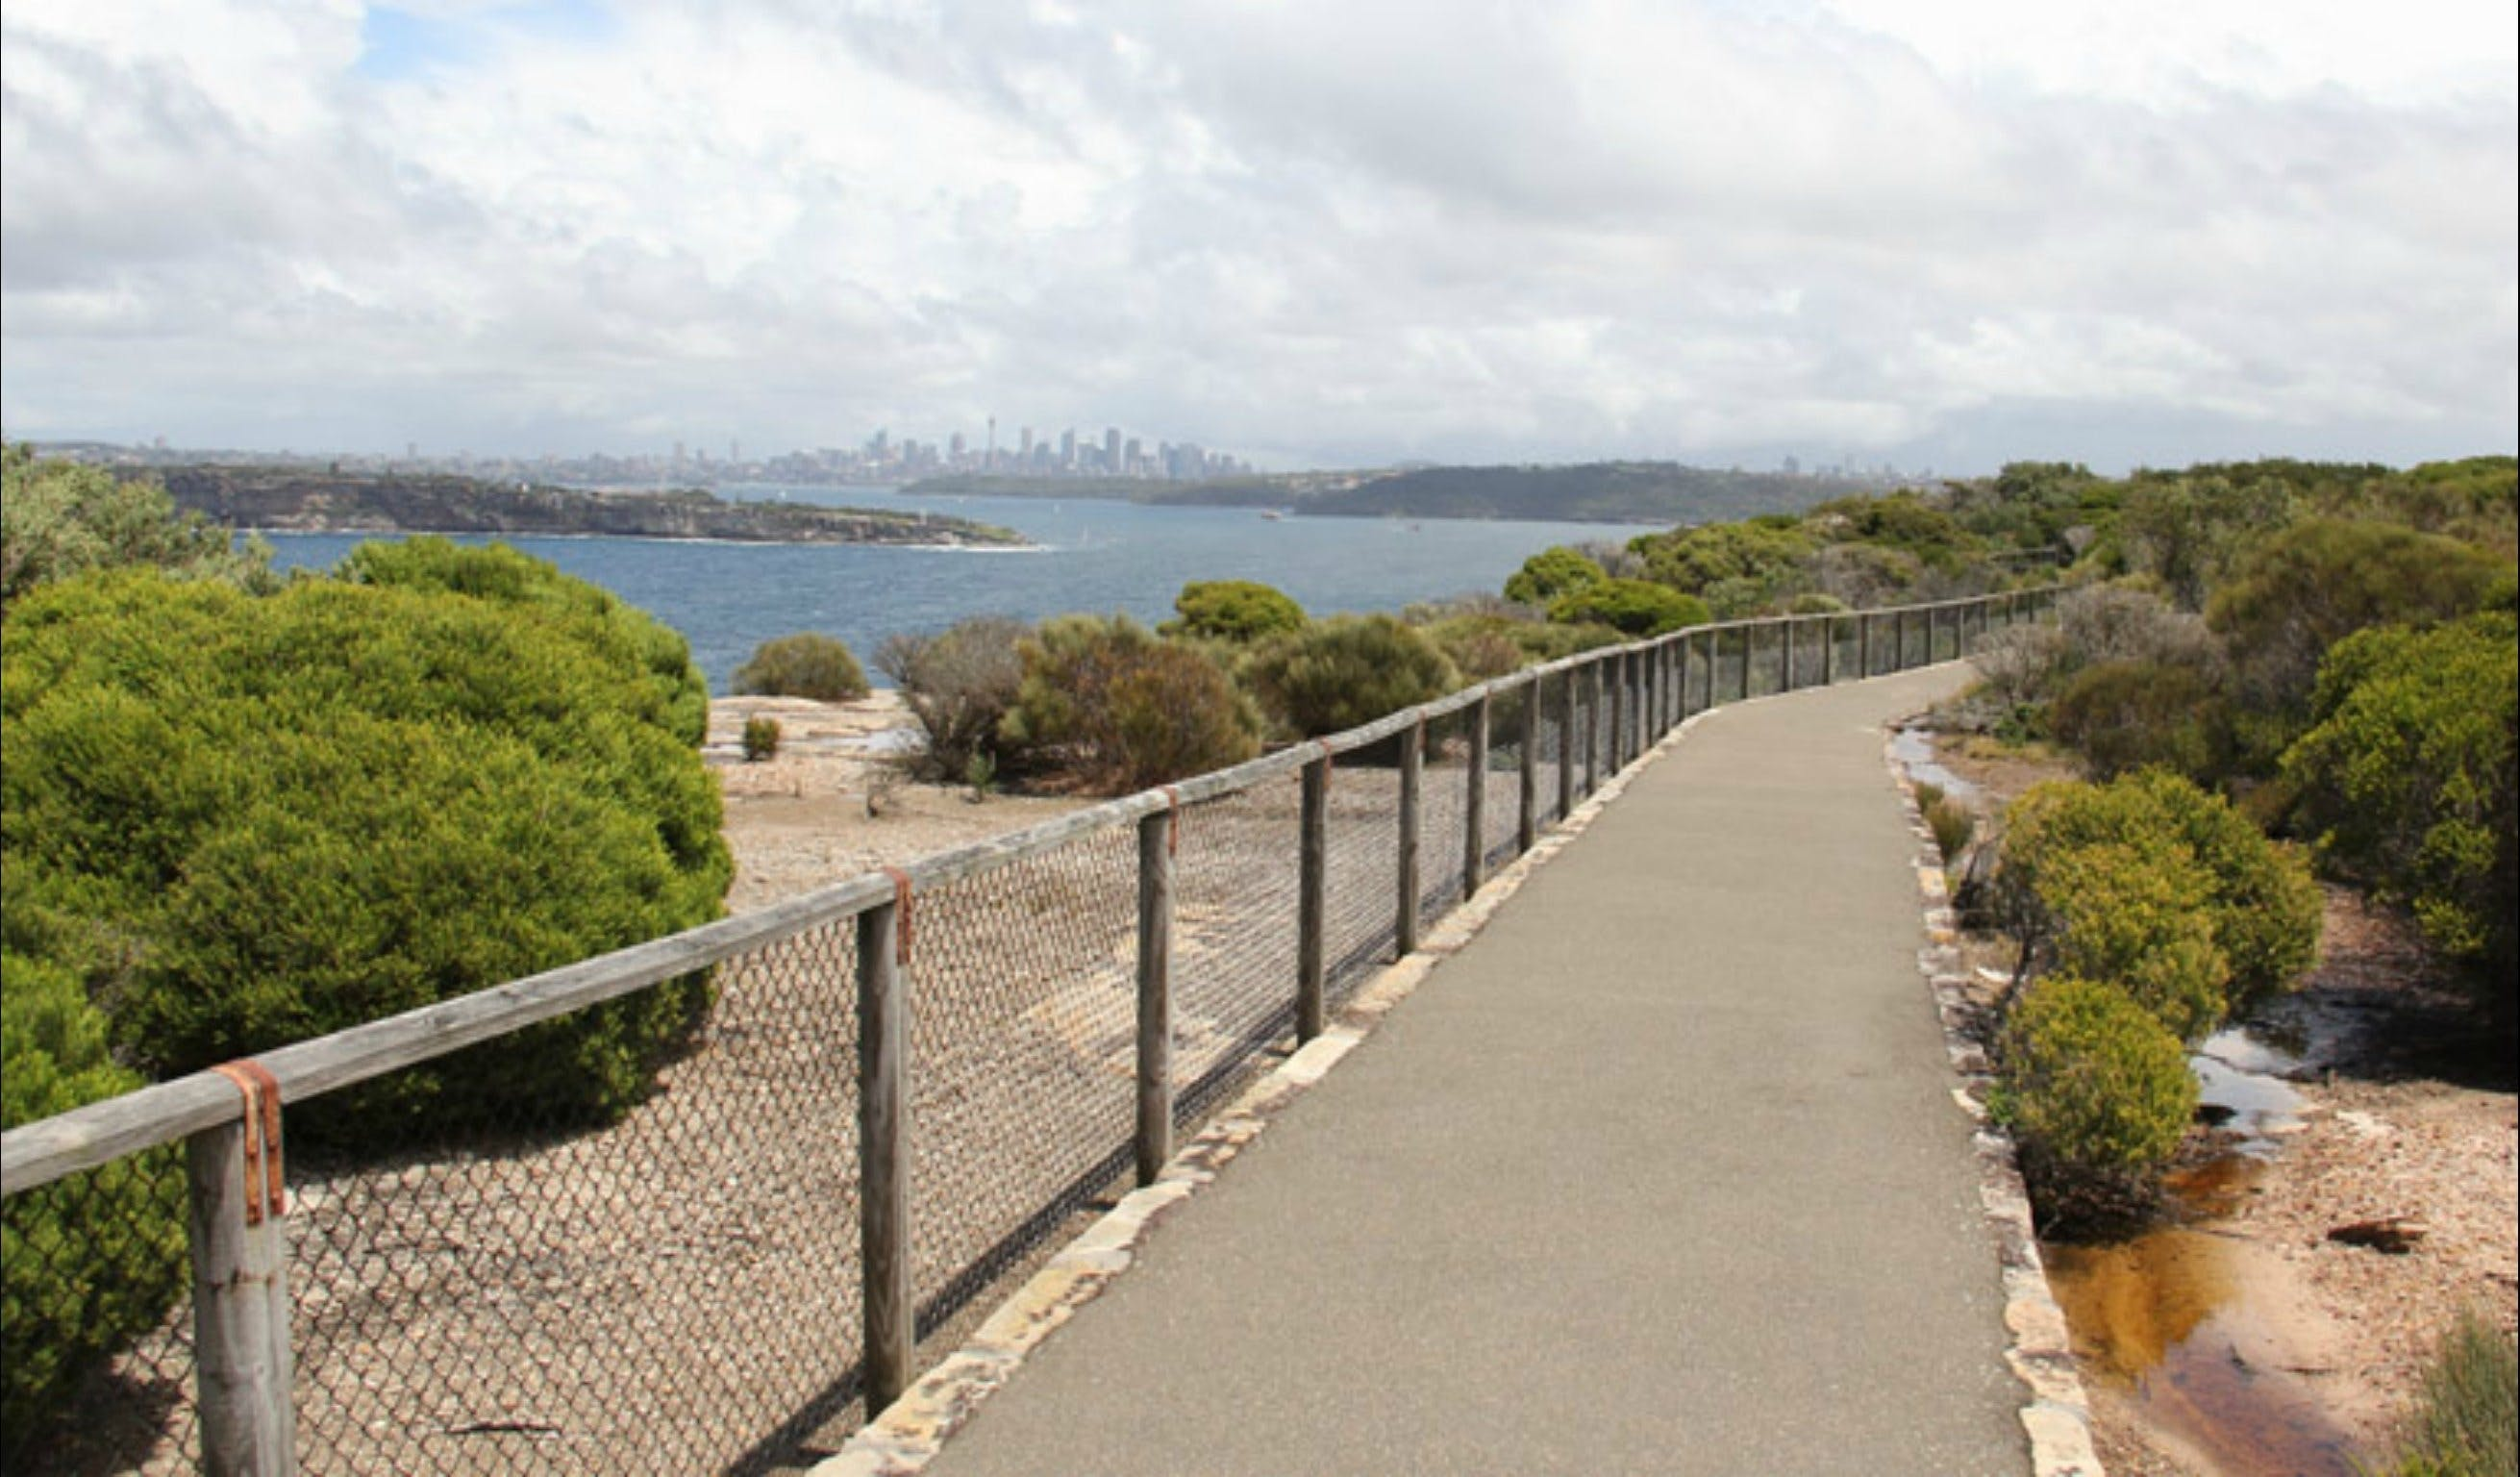 Fairfax walk - Attractions Perth